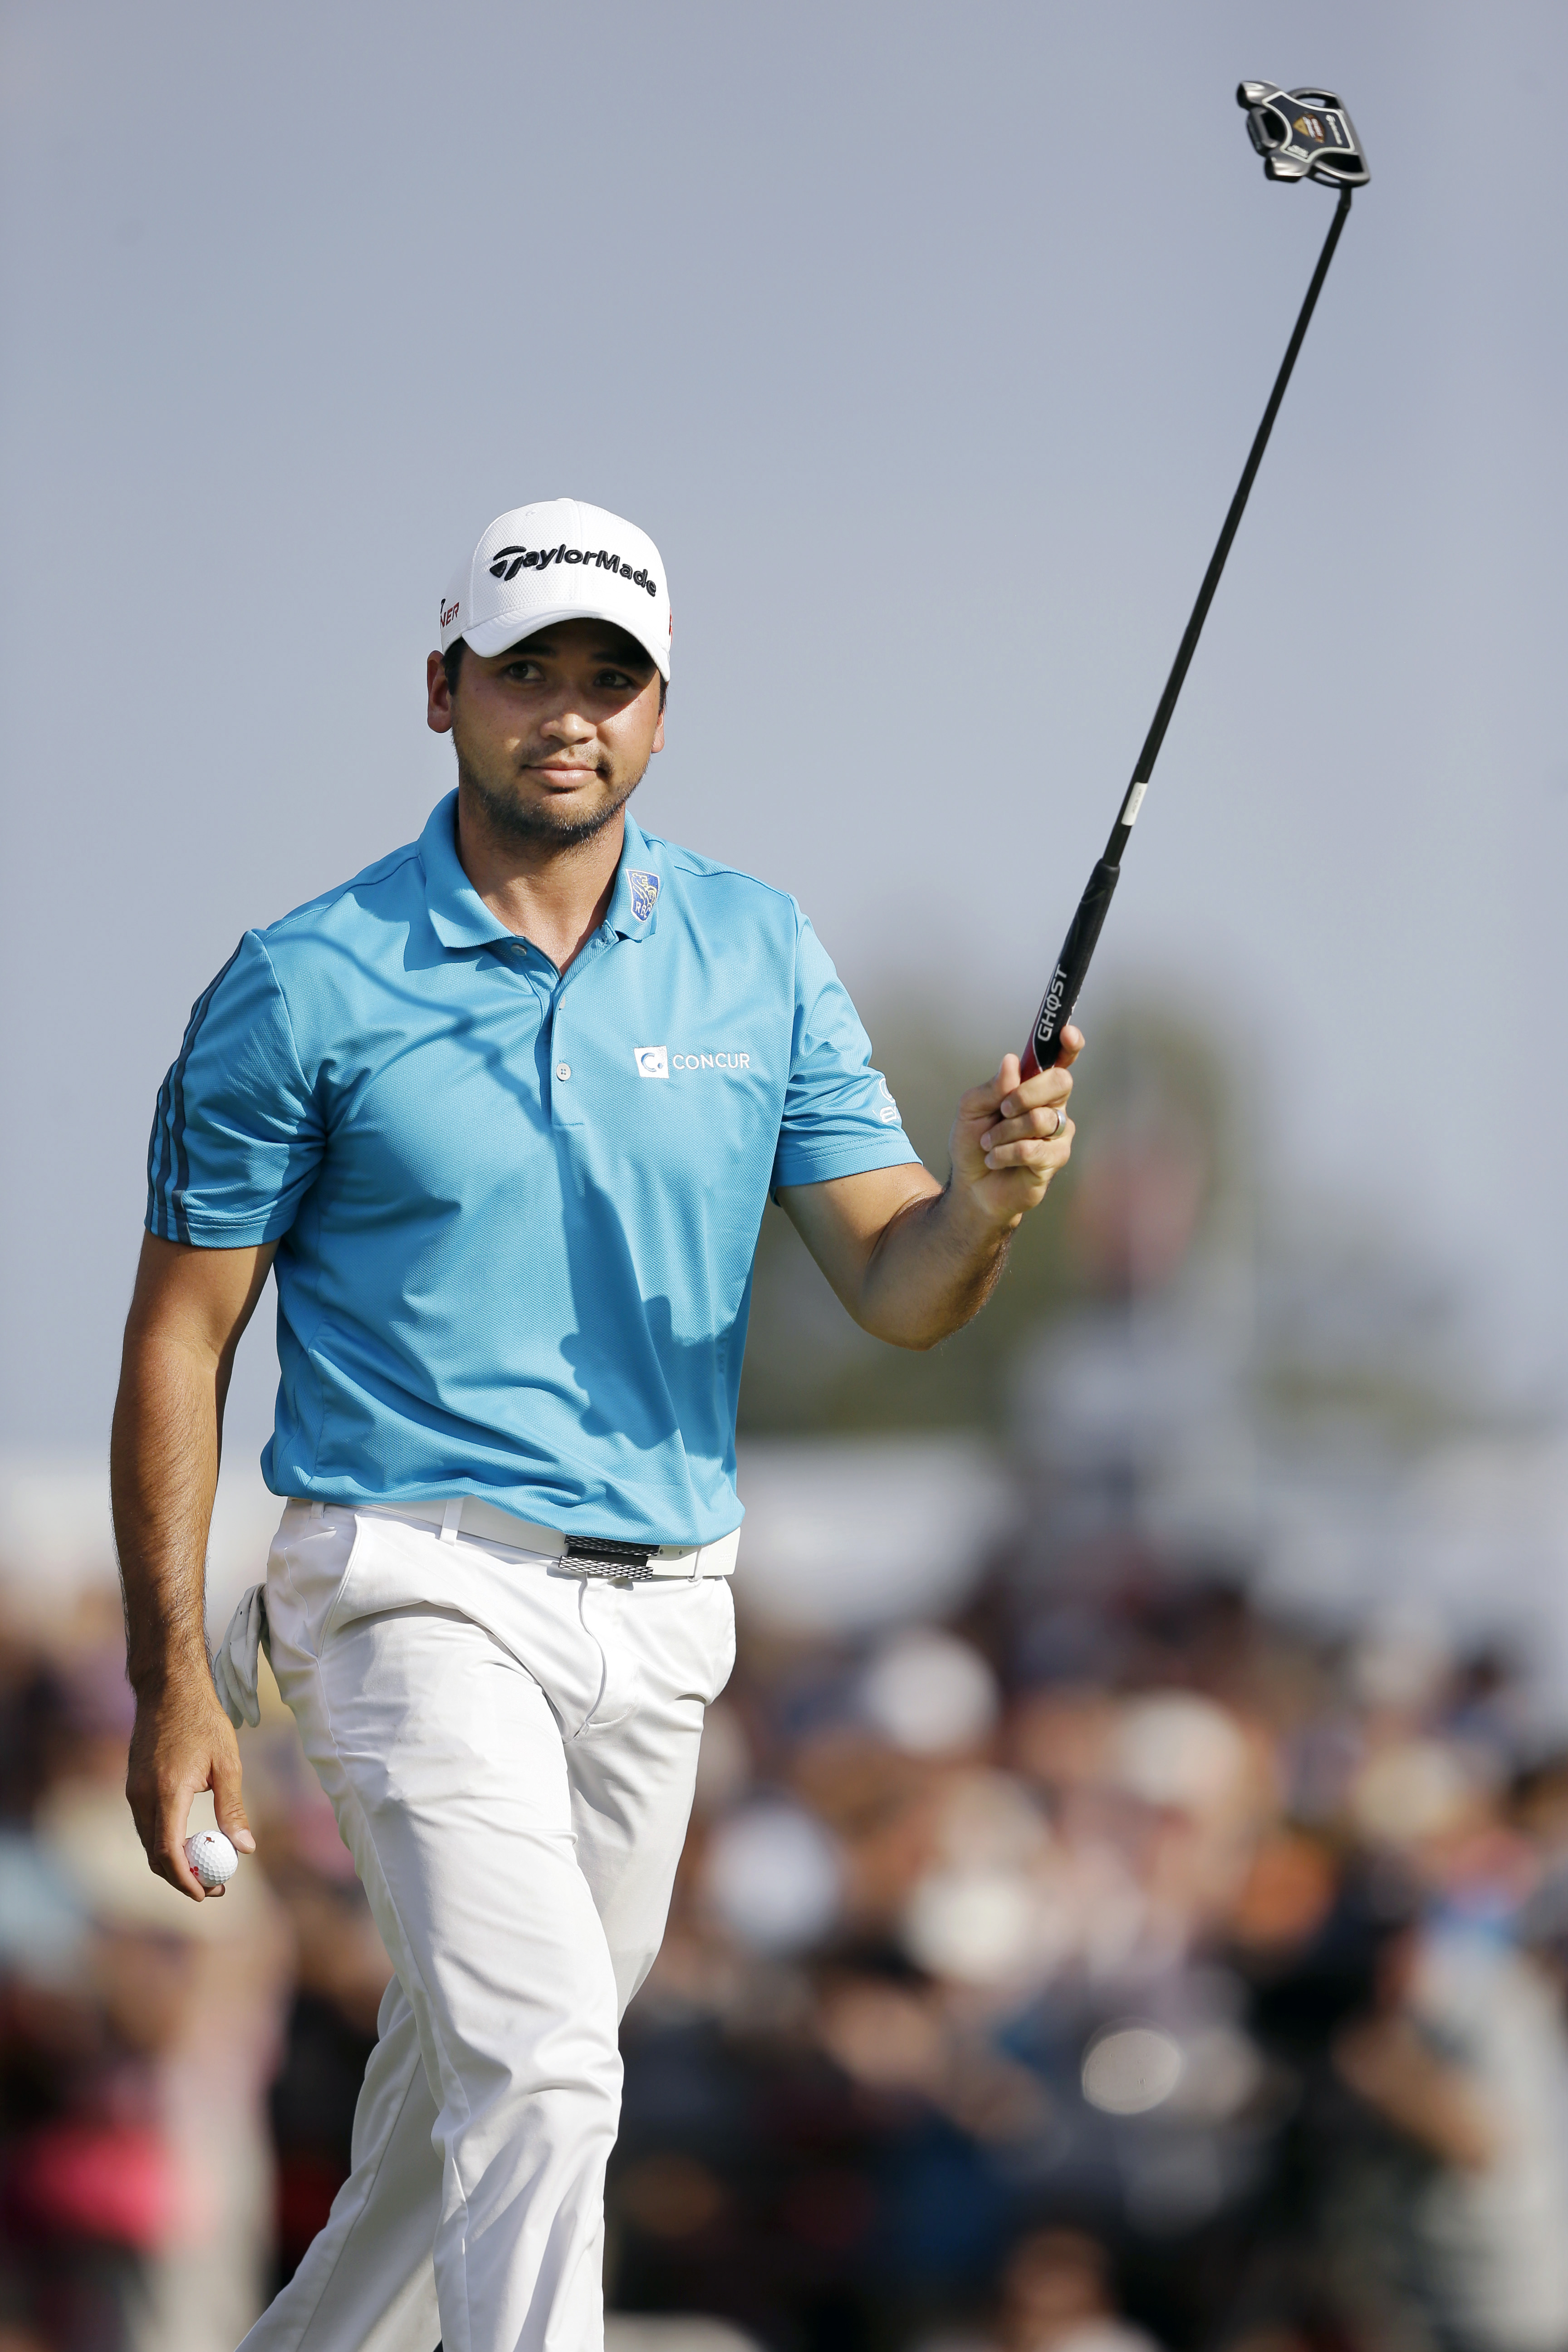 Jason Day, of Australia waves his club after hitting his putt on the 18th hole during the third round of play at The Barclays golf tournament Saturday, Aug. 29, 2015, in Edison, N.J. (AP Photo/Mel Evans)